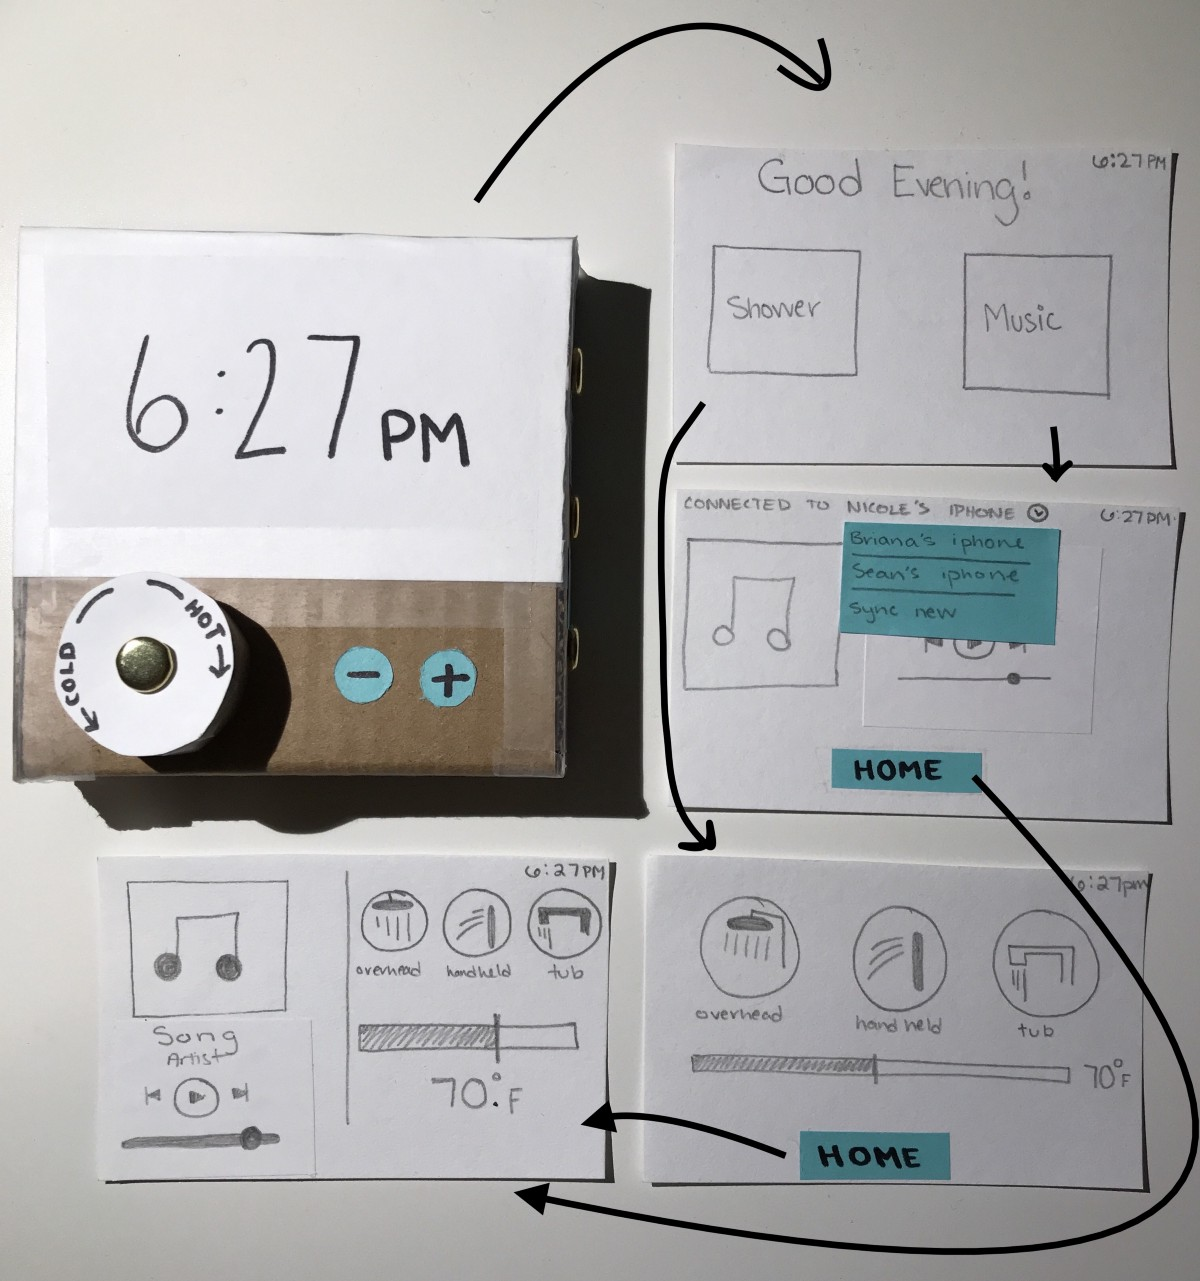 Modal Prototyping Process Blog: Shower Control Interface